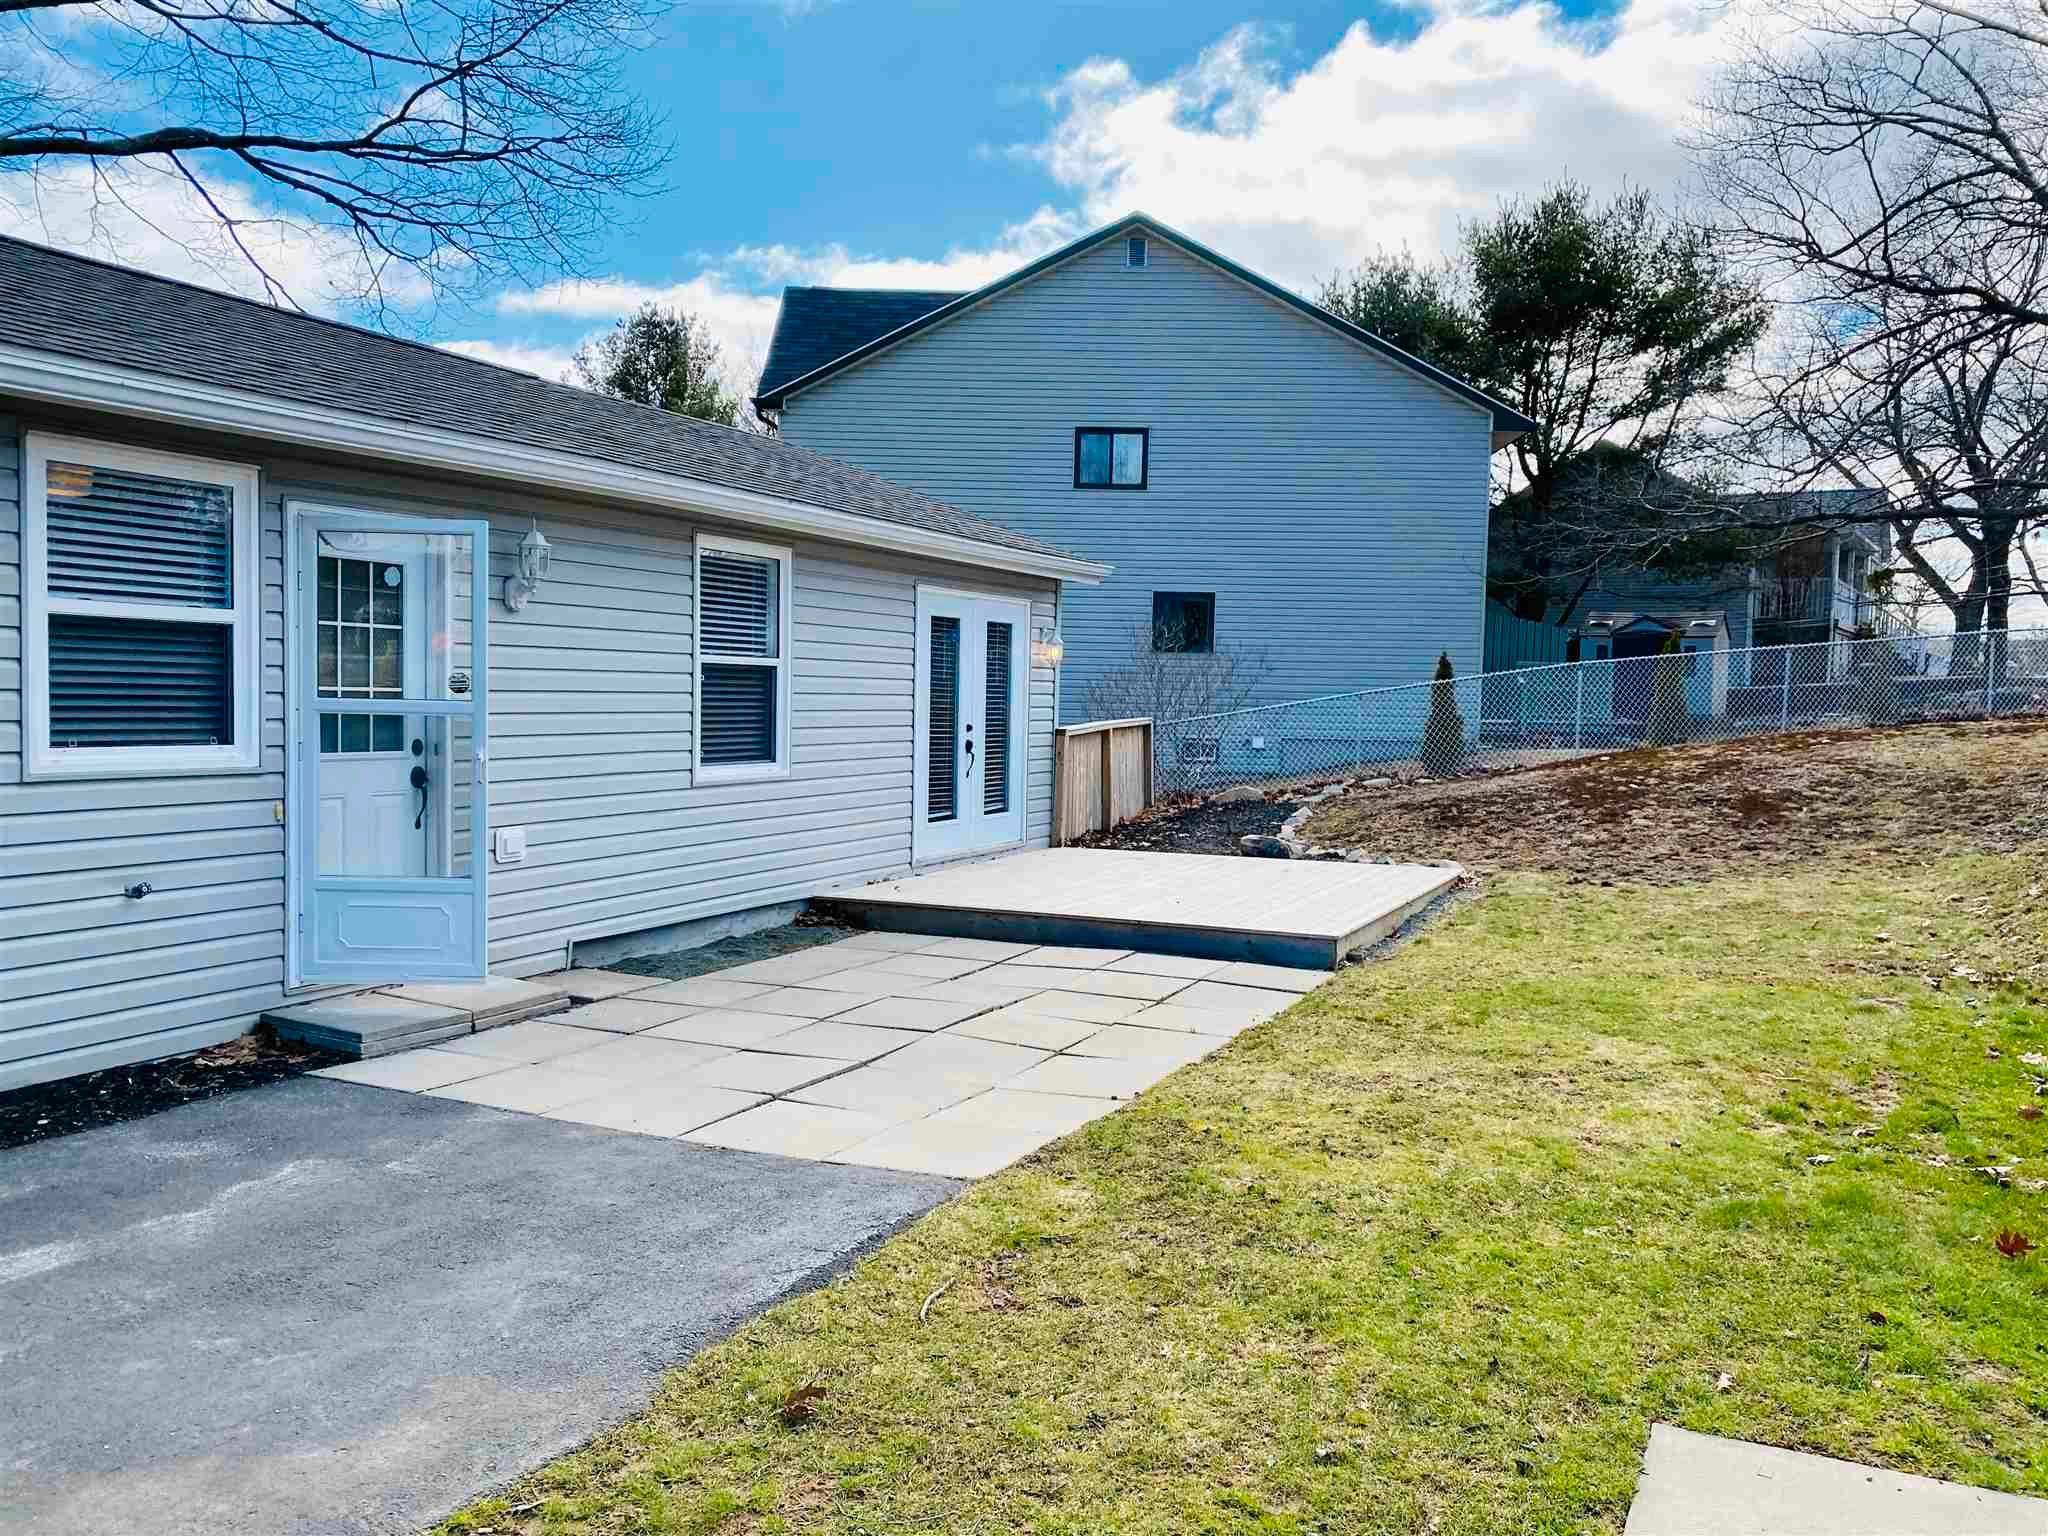 Main Photo: 43 Sunnydale Crescent in Bedford: 20-Bedford Residential for sale (Halifax-Dartmouth)  : MLS®# 202107606